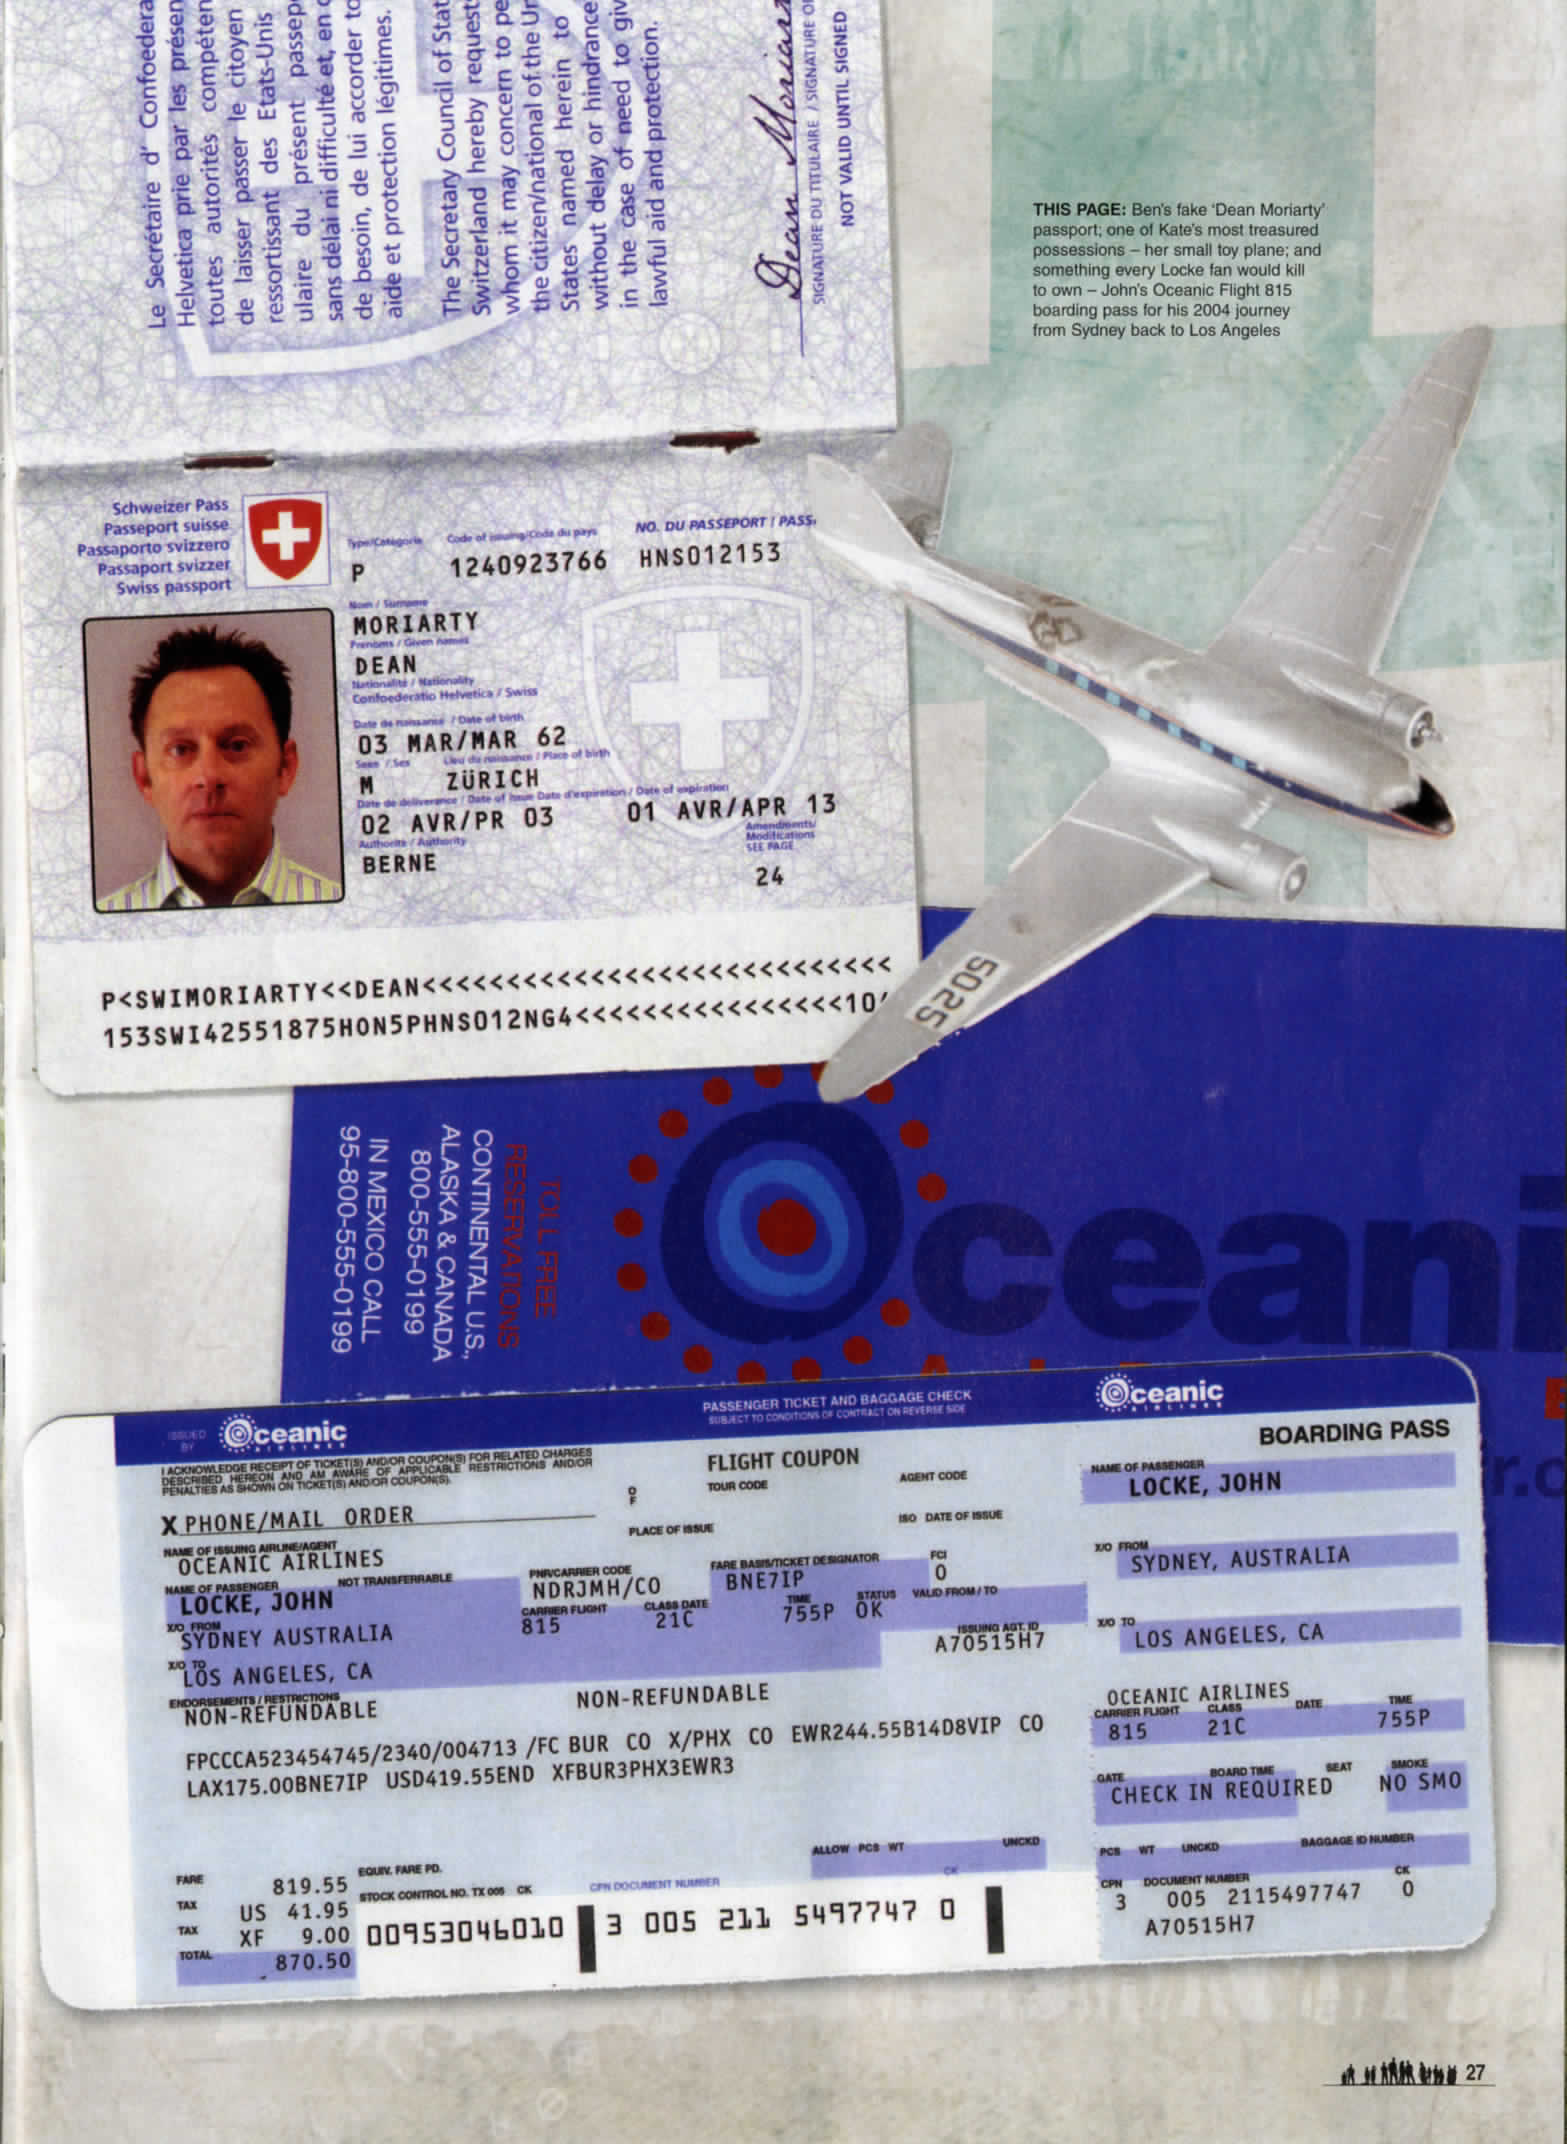 magazine article, lost the official magazine with pictures of Oceanic flight ticket and a picture of a small white airplane